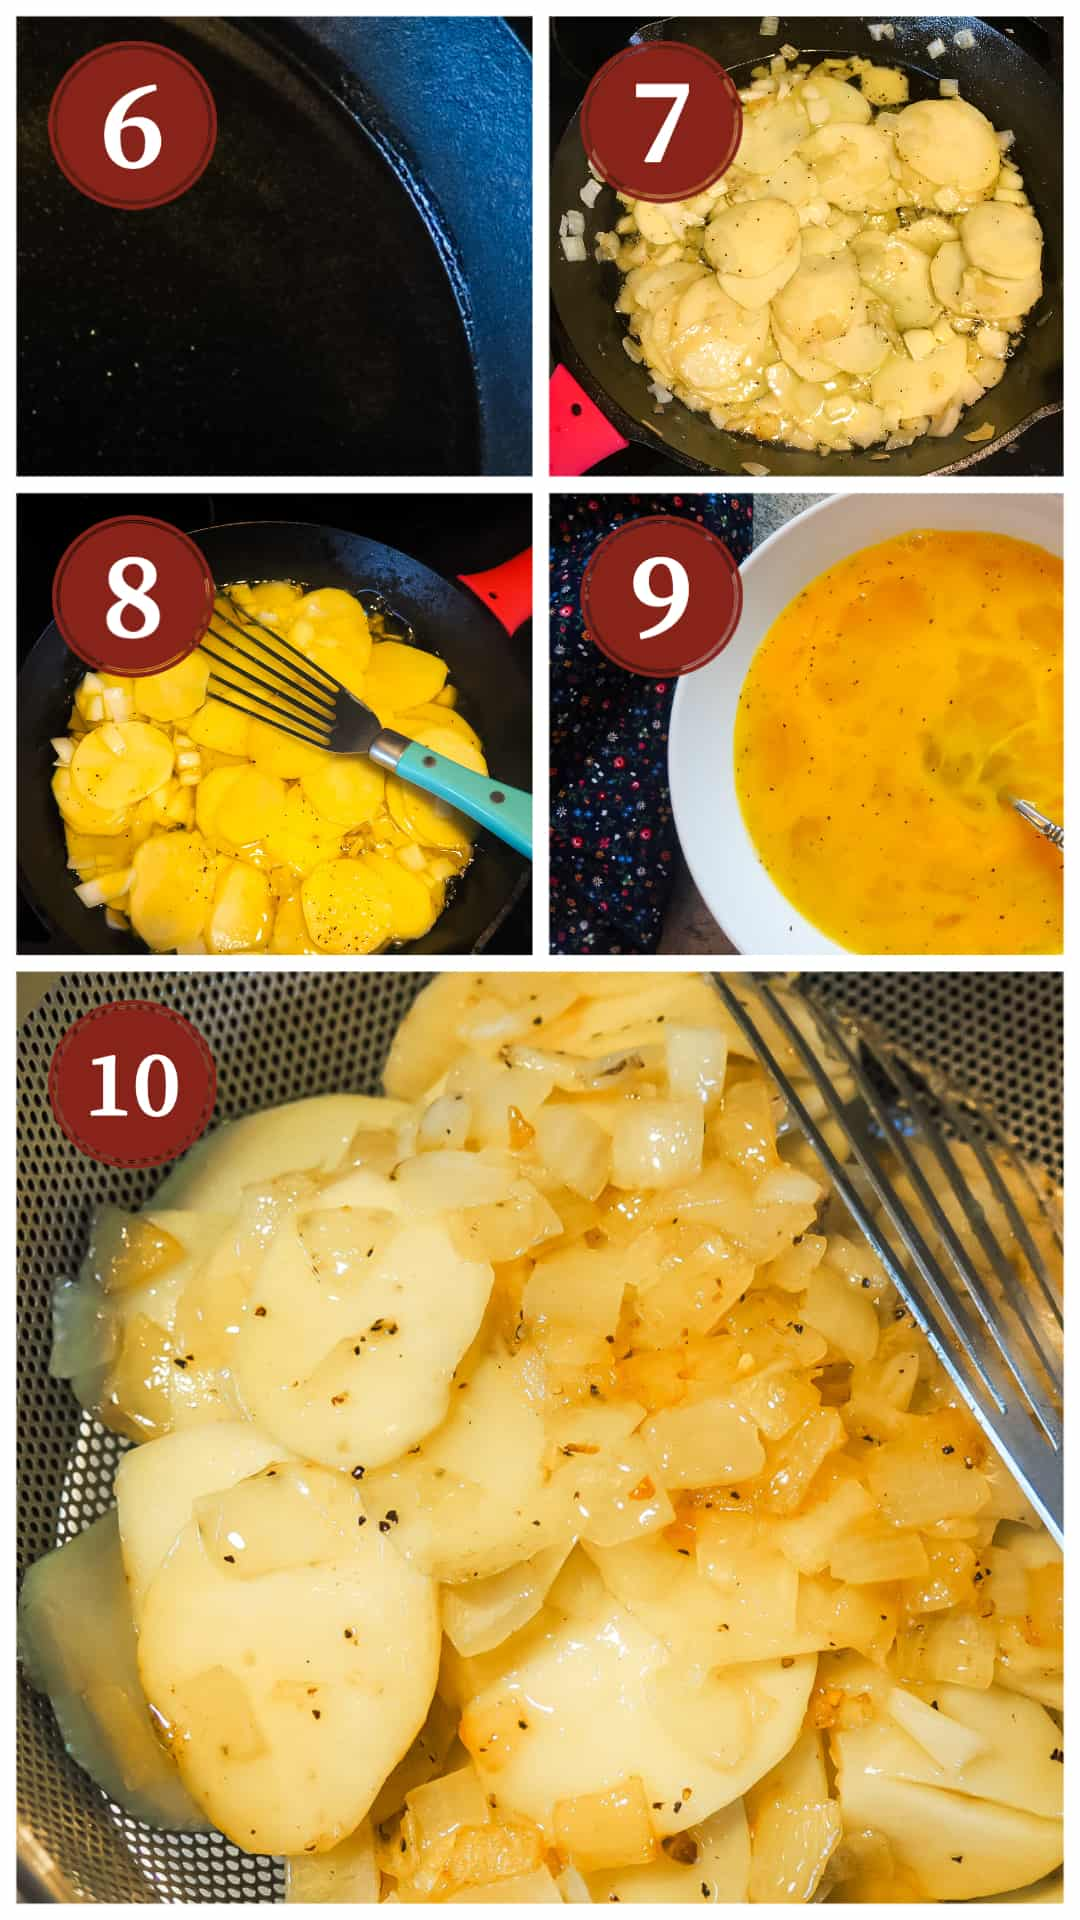 A collage of images showing the process of making a Spanish tortilla, steps 6 - 10.